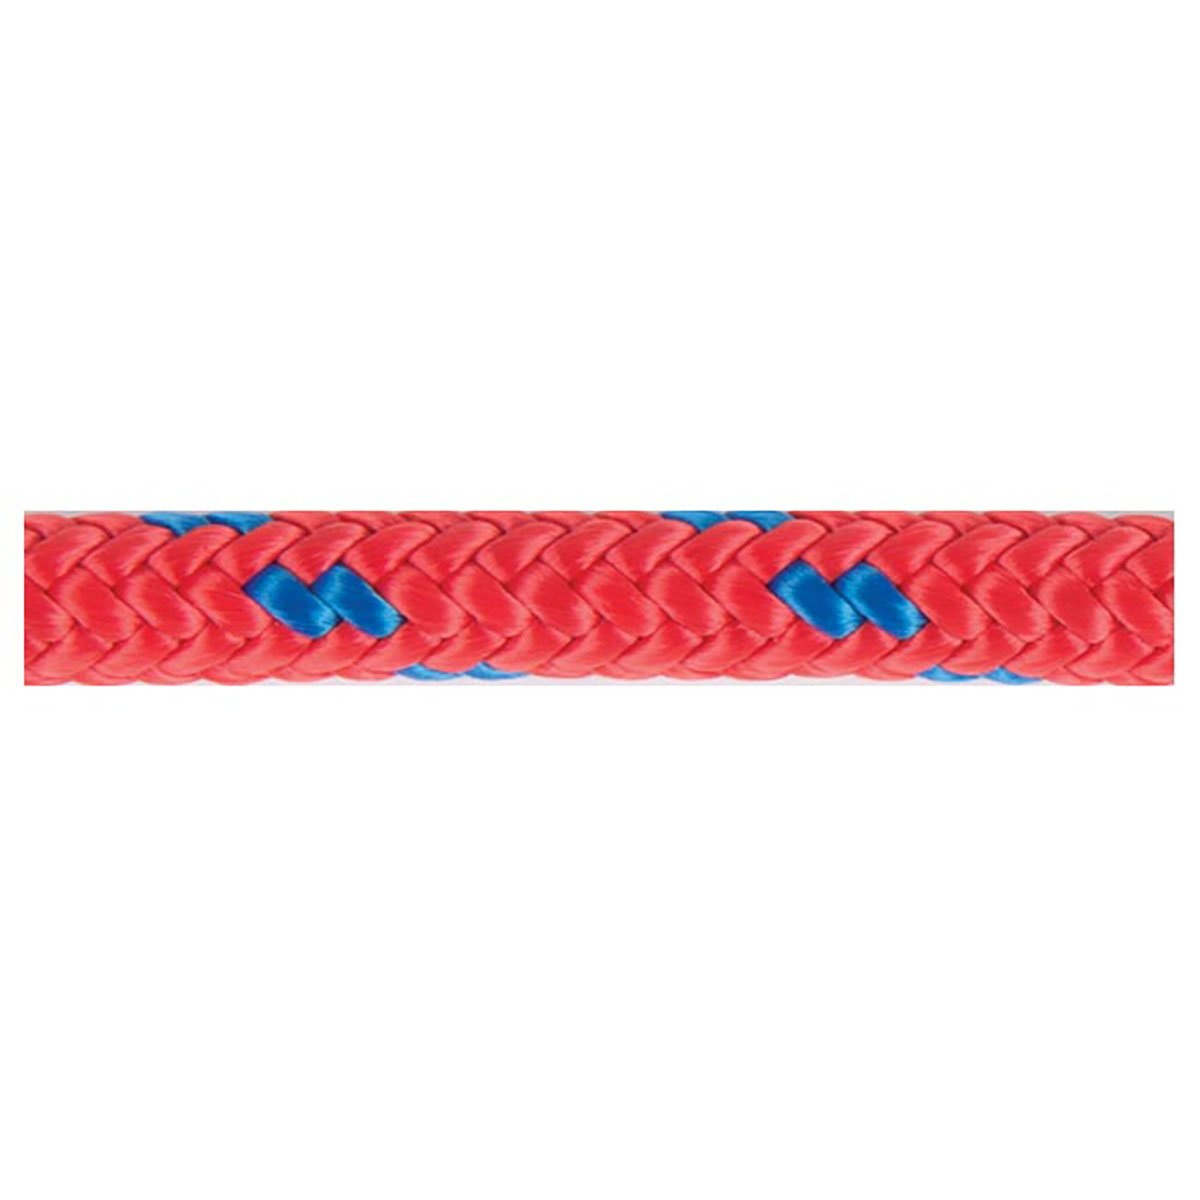 Cypher 9 mm x 300 'ACC Cord – rosso